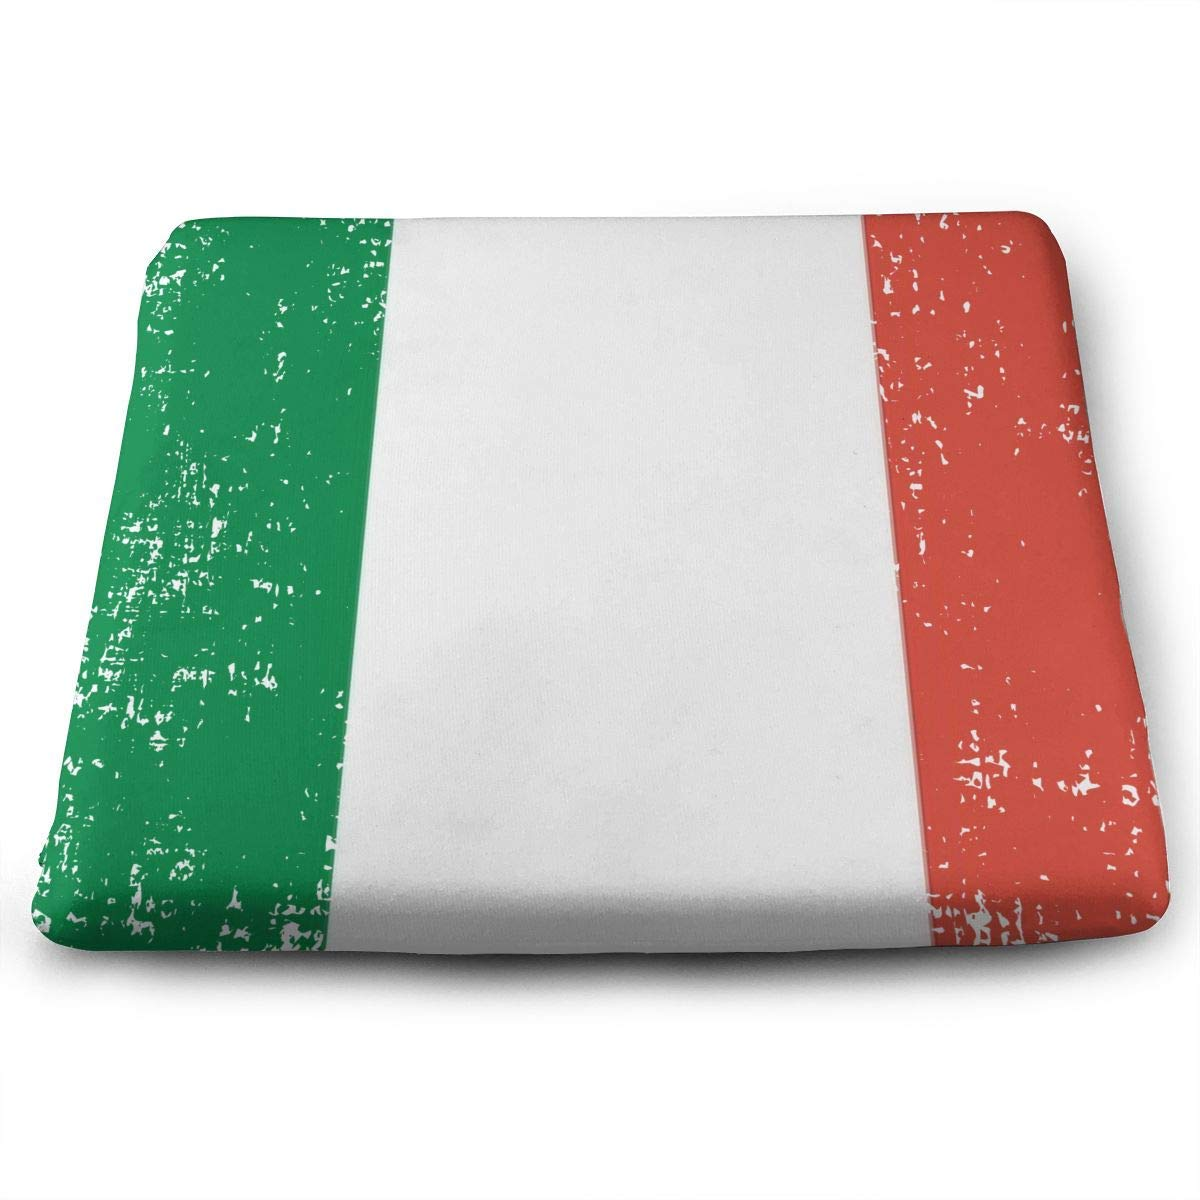 Phenomenal Amazon Com Seat Cushion For Office Chair Vintage Italy Short Links Chair Design For Home Short Linksinfo